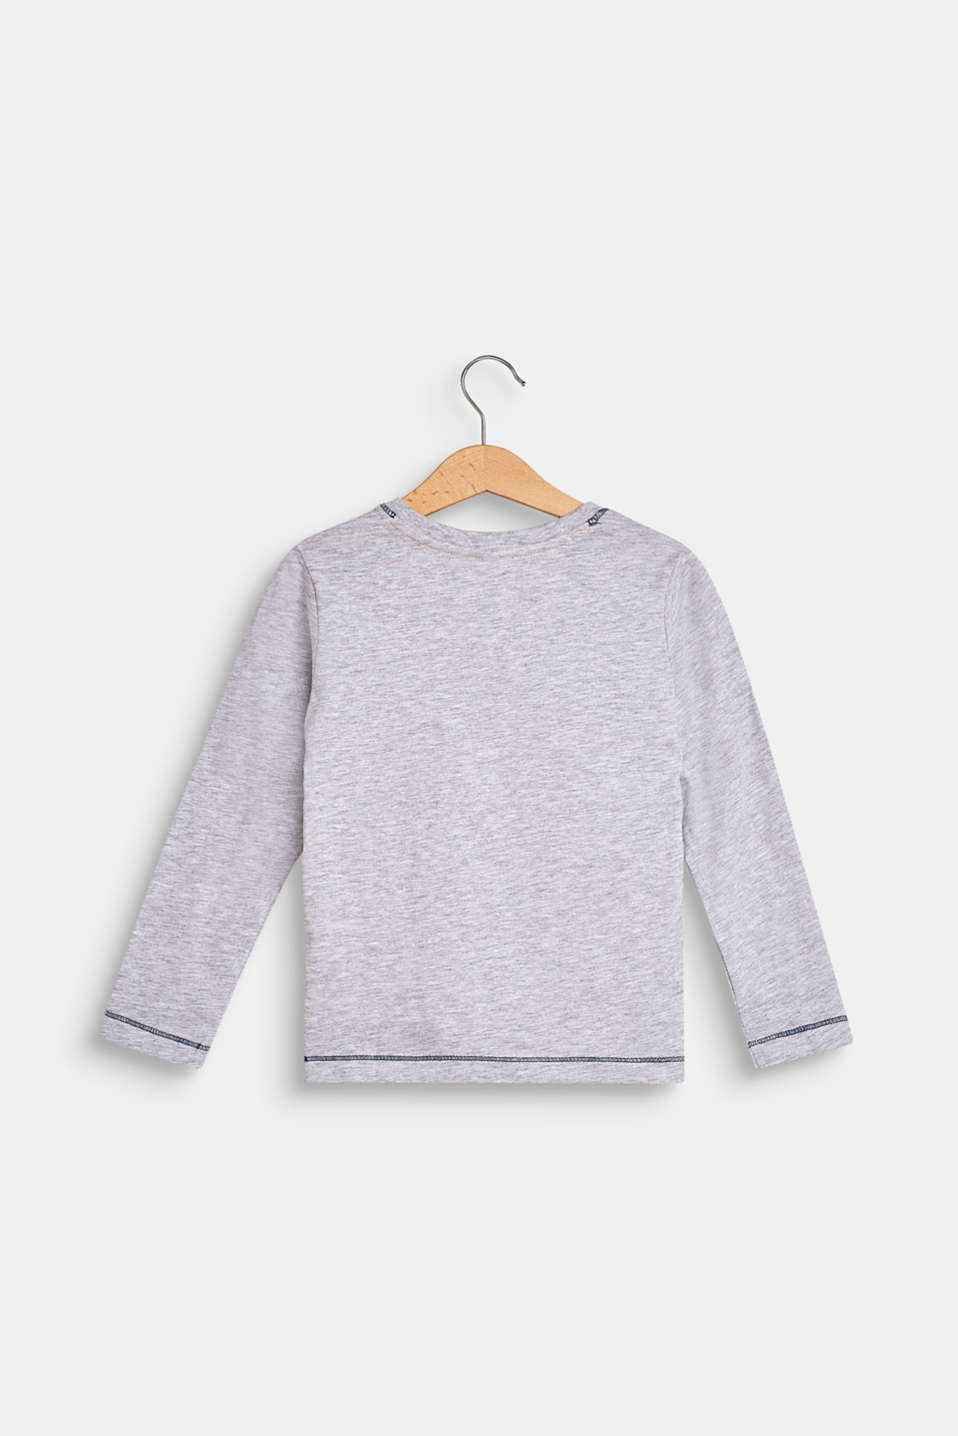 Melange long sleeve top with a statement print, LCHEATHER SILVER, detail image number 1